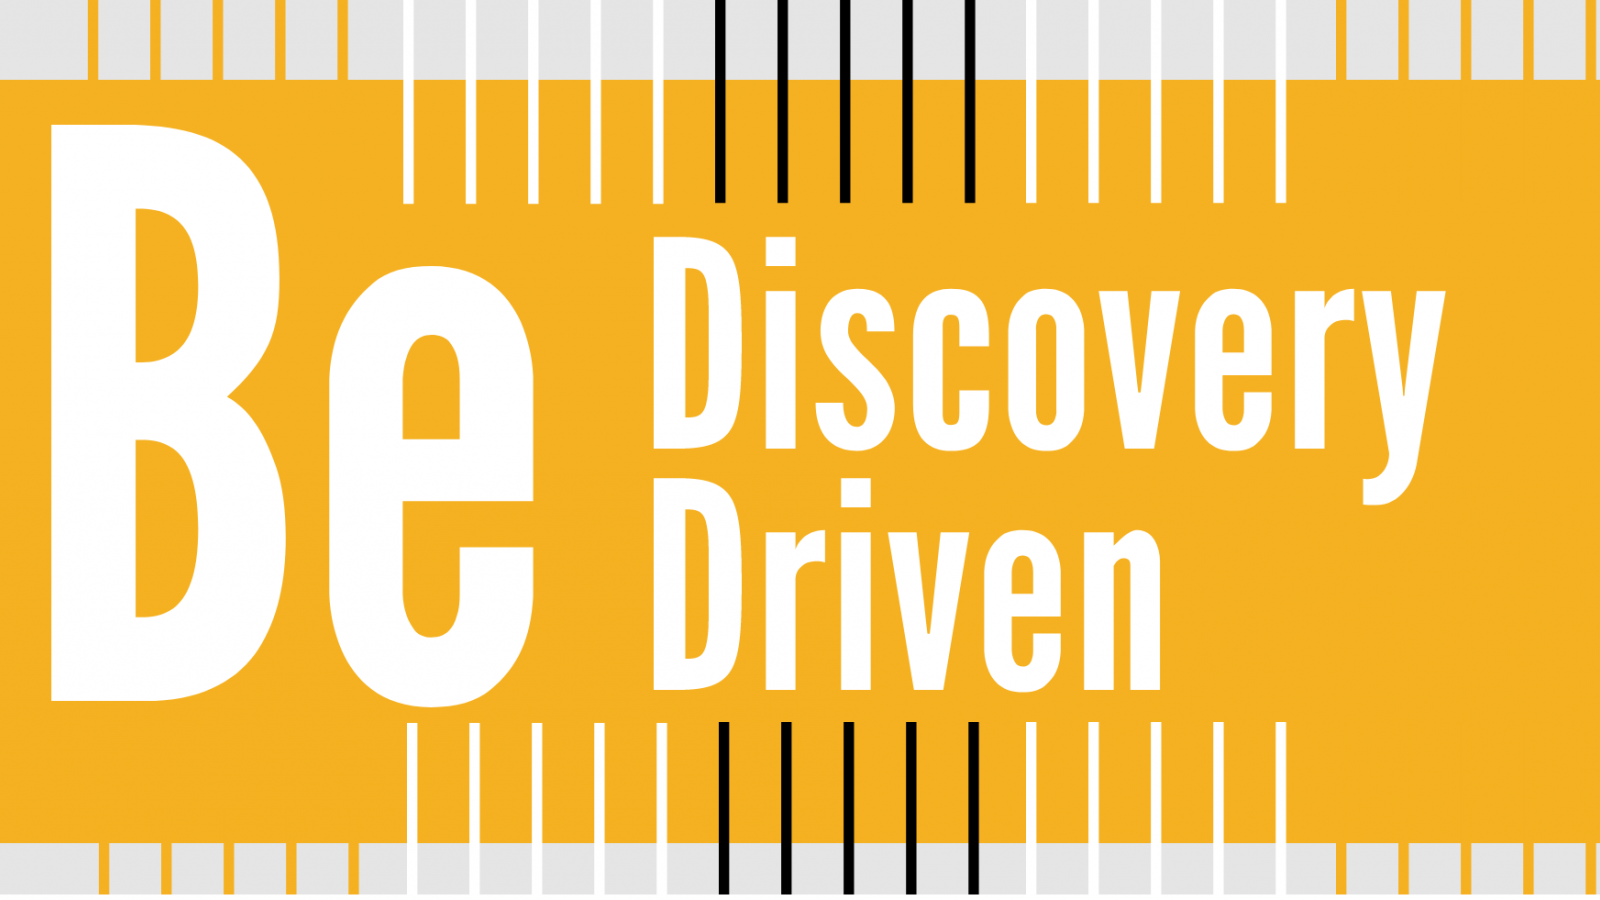 Be Discovery Driven